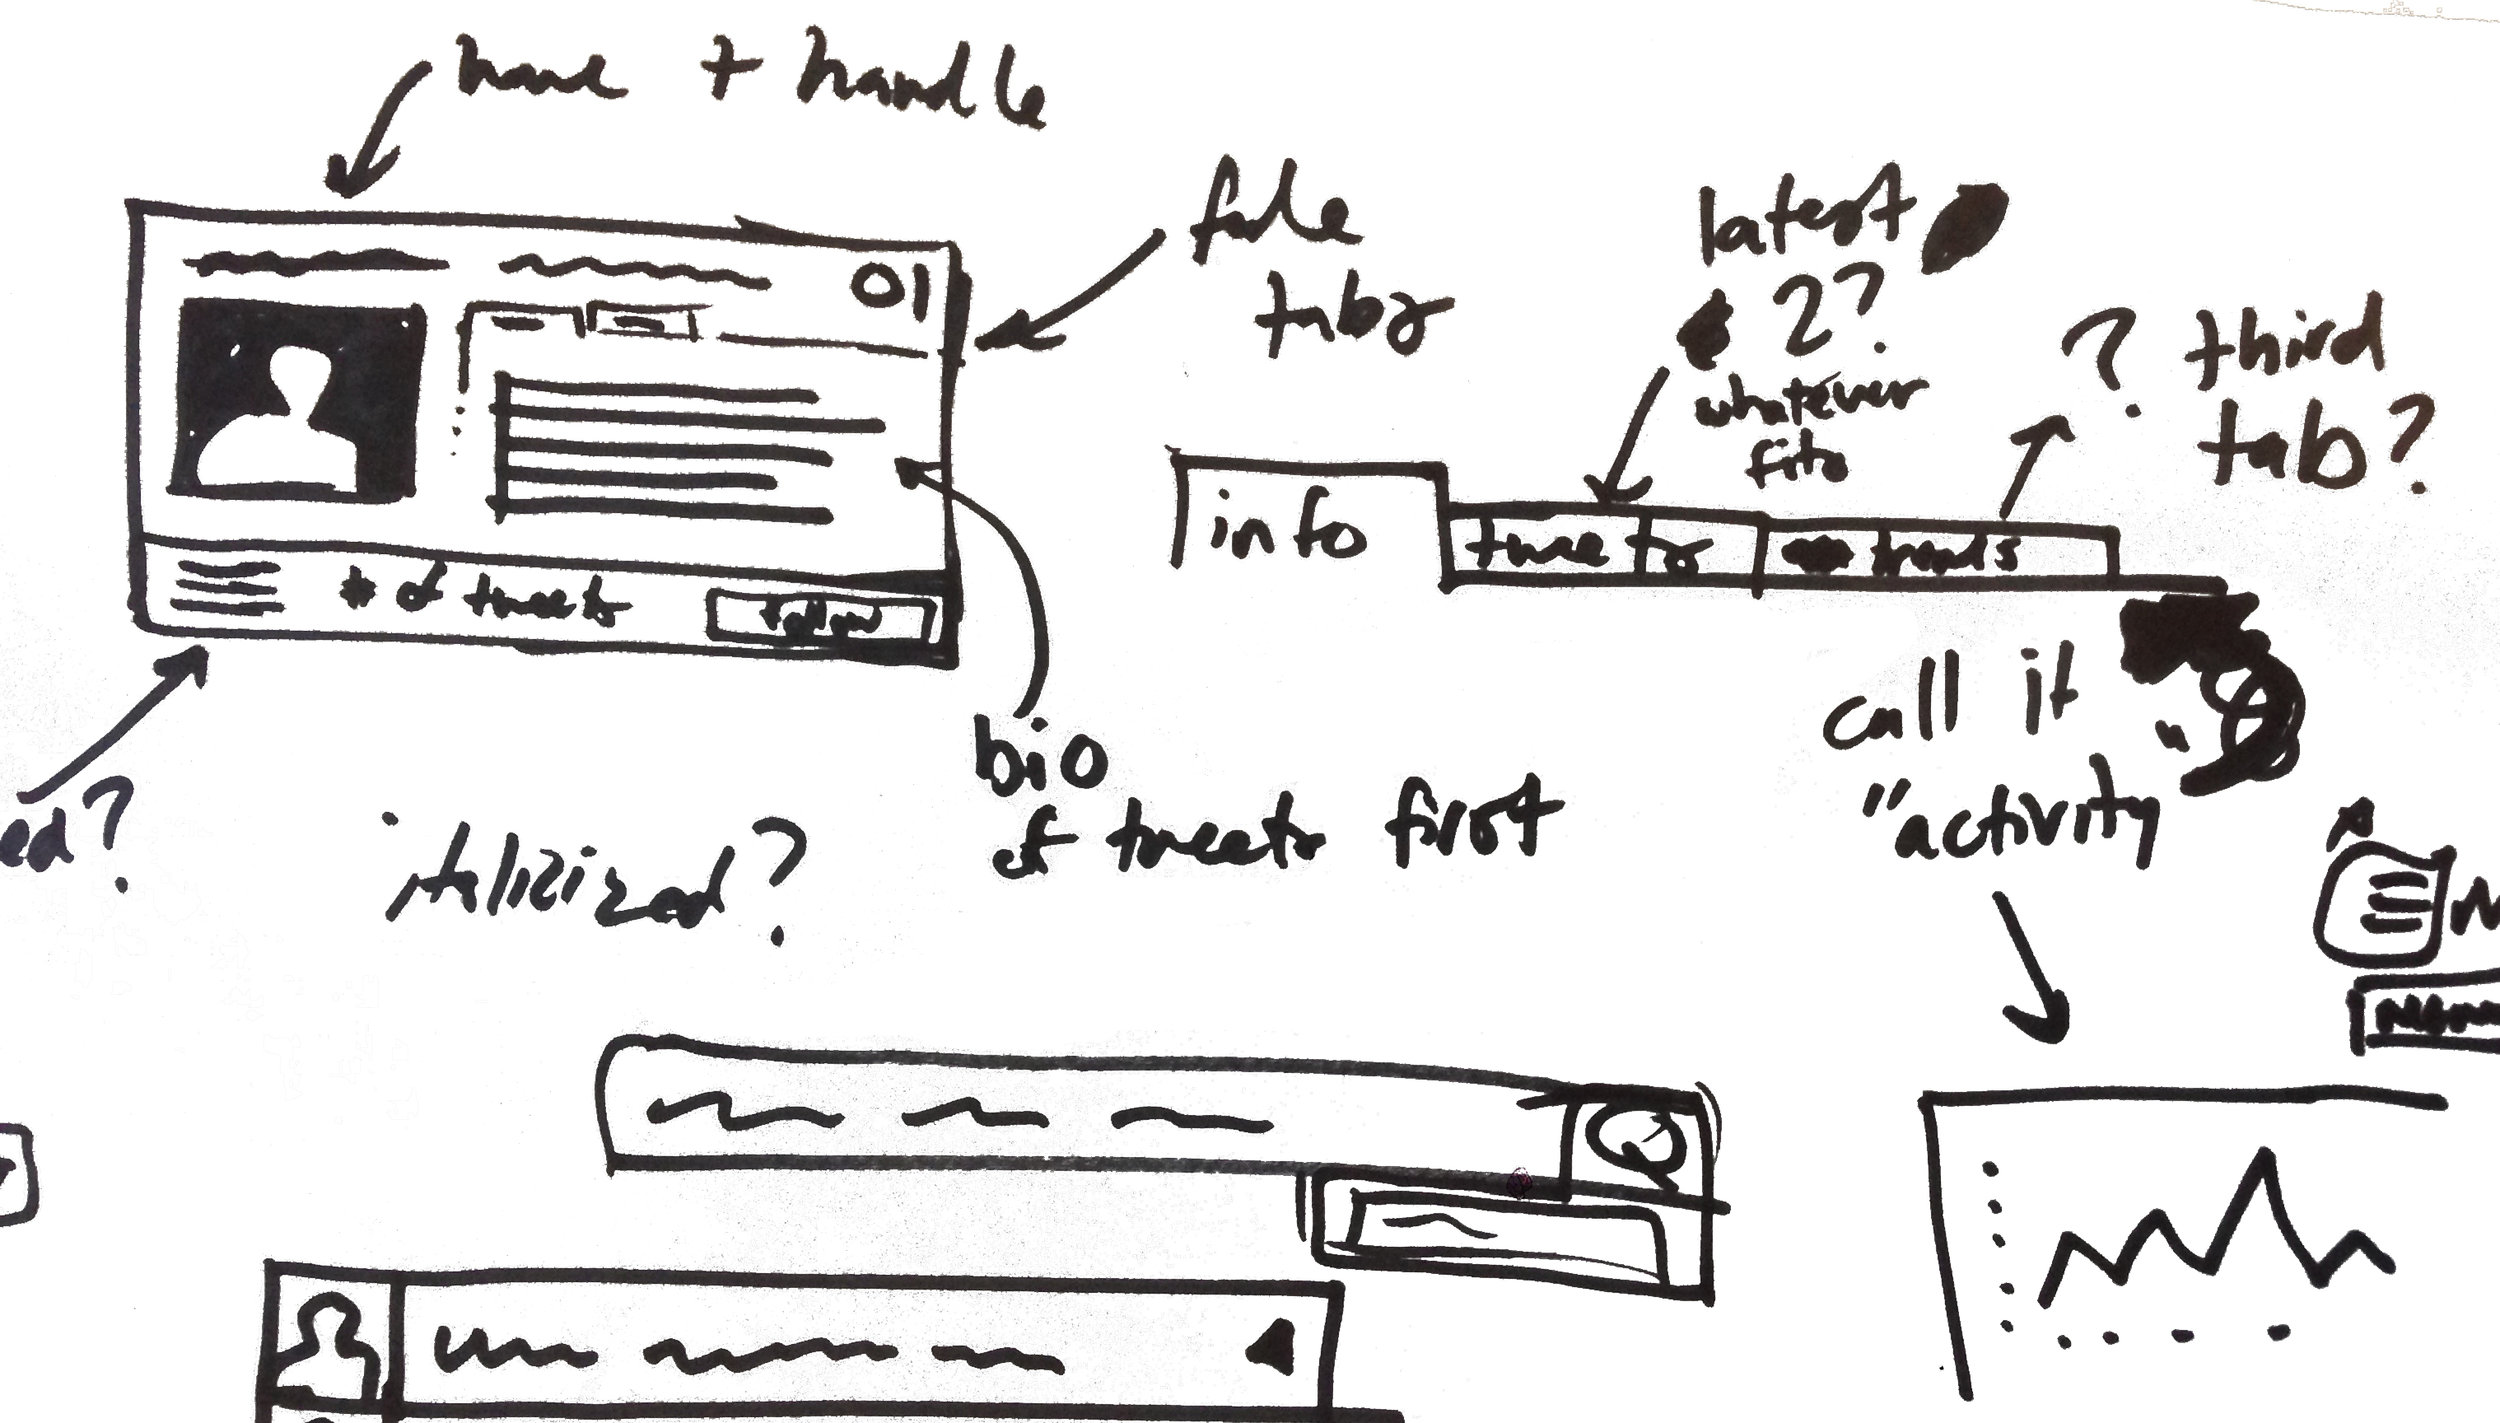 UX sketch proposal for Influencer view